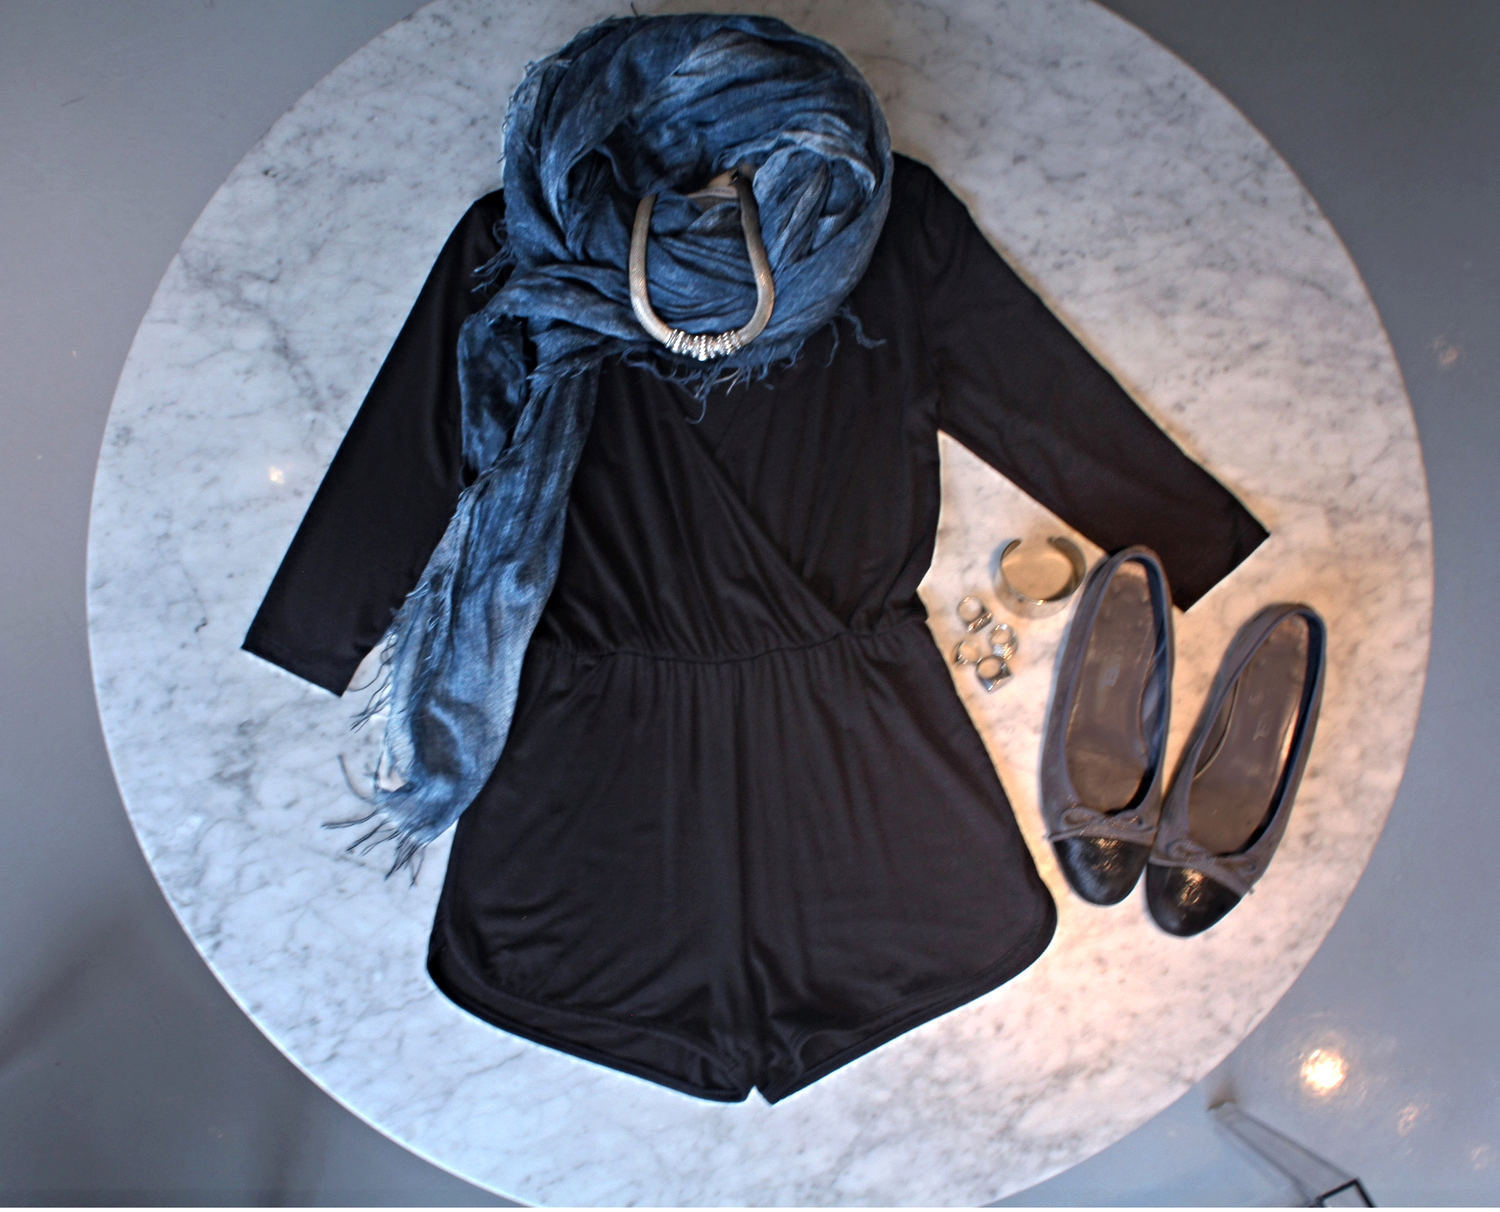 For a more laid back day look, this Vanity Room romper will leave you being comfy, and looking good! Pairing a scarf with a black romper brings a pop of color to the outfit.